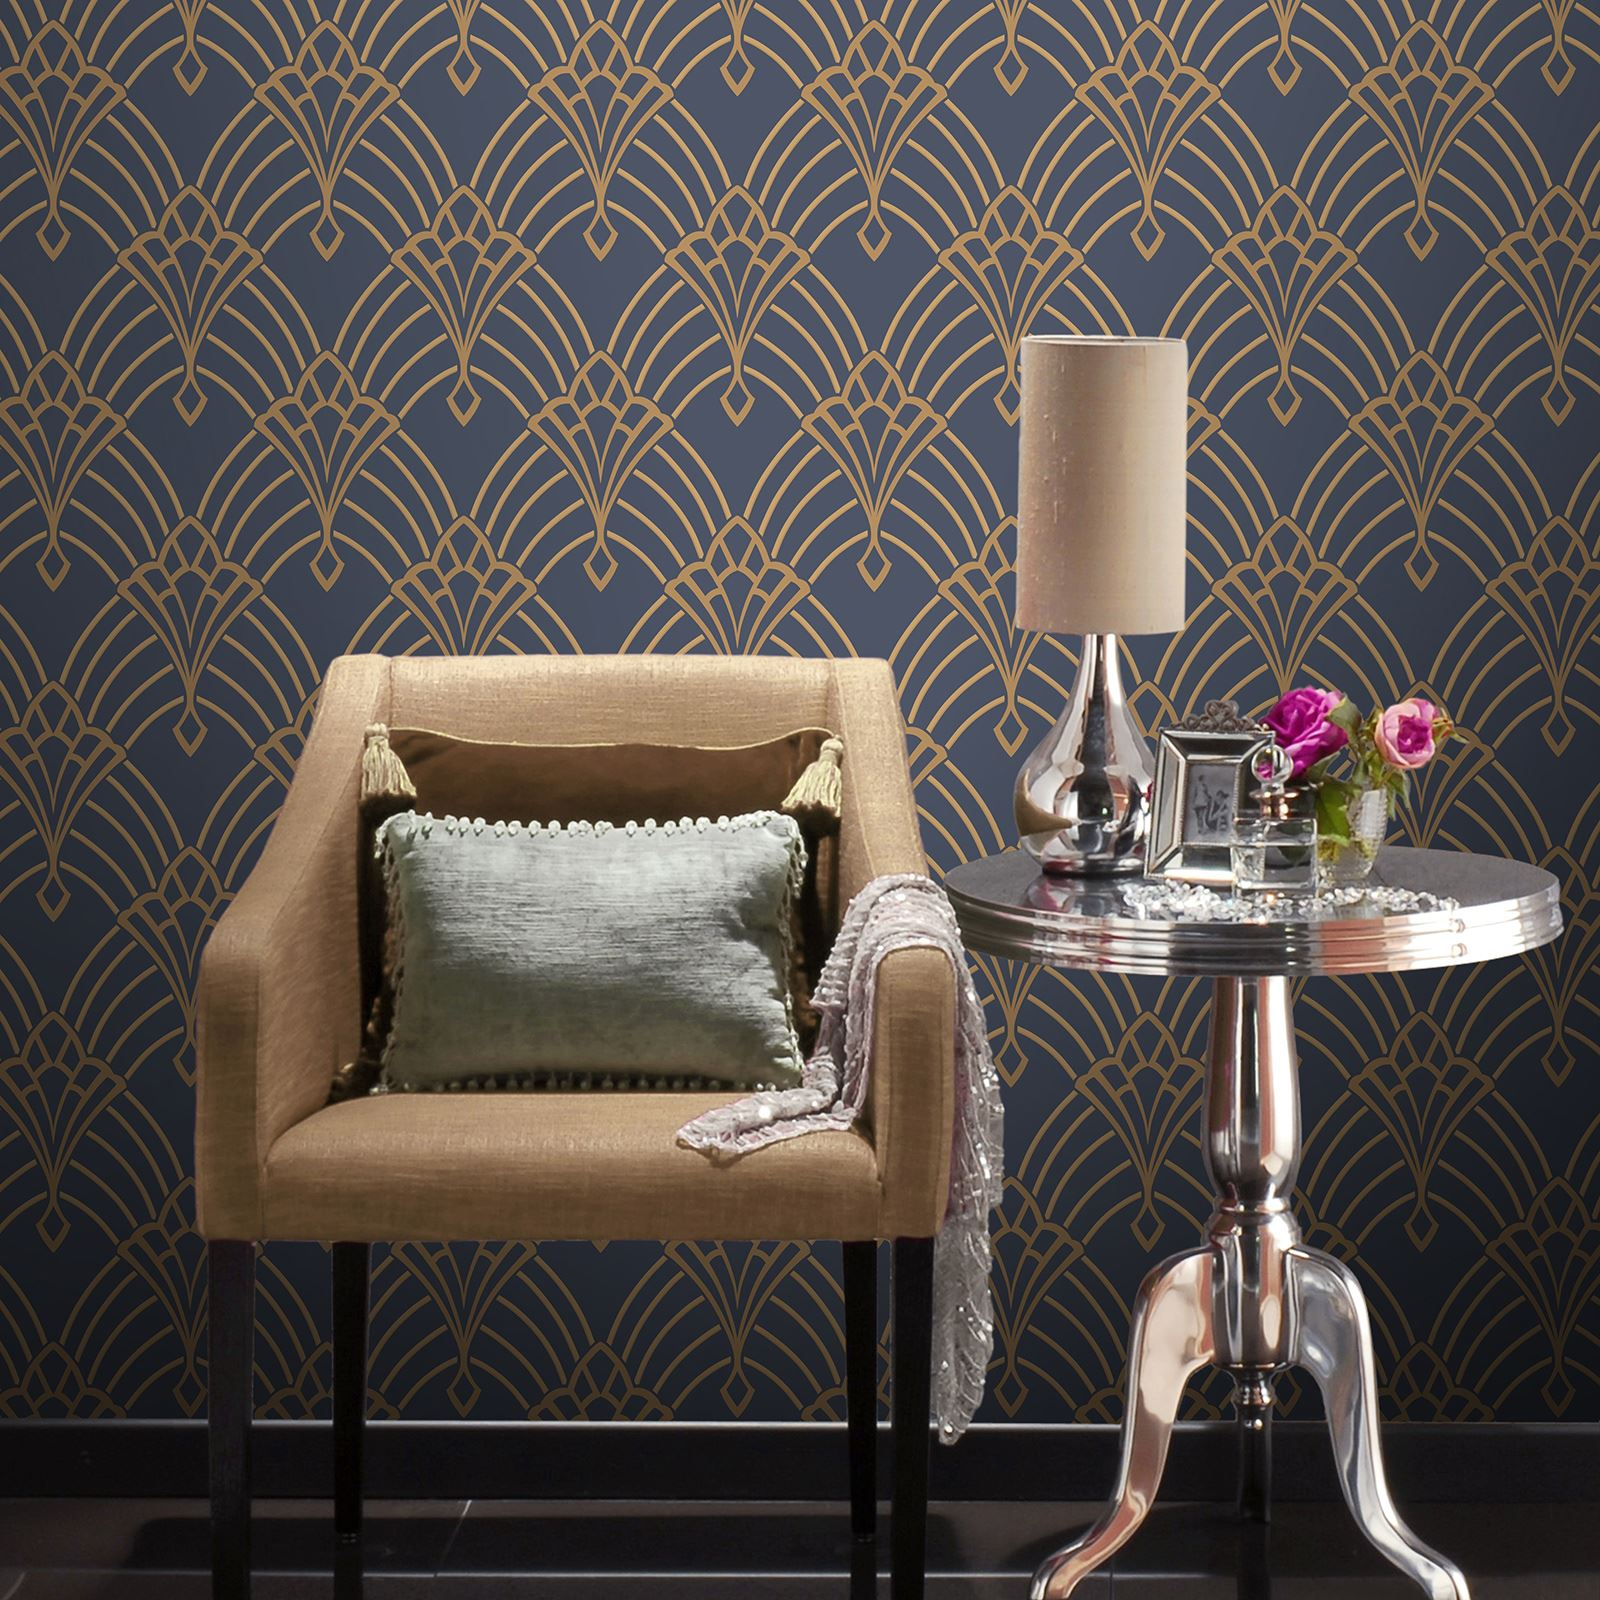 astoria art deco wallpaper dark blue gold rasch 305340 new ebay. Black Bedroom Furniture Sets. Home Design Ideas